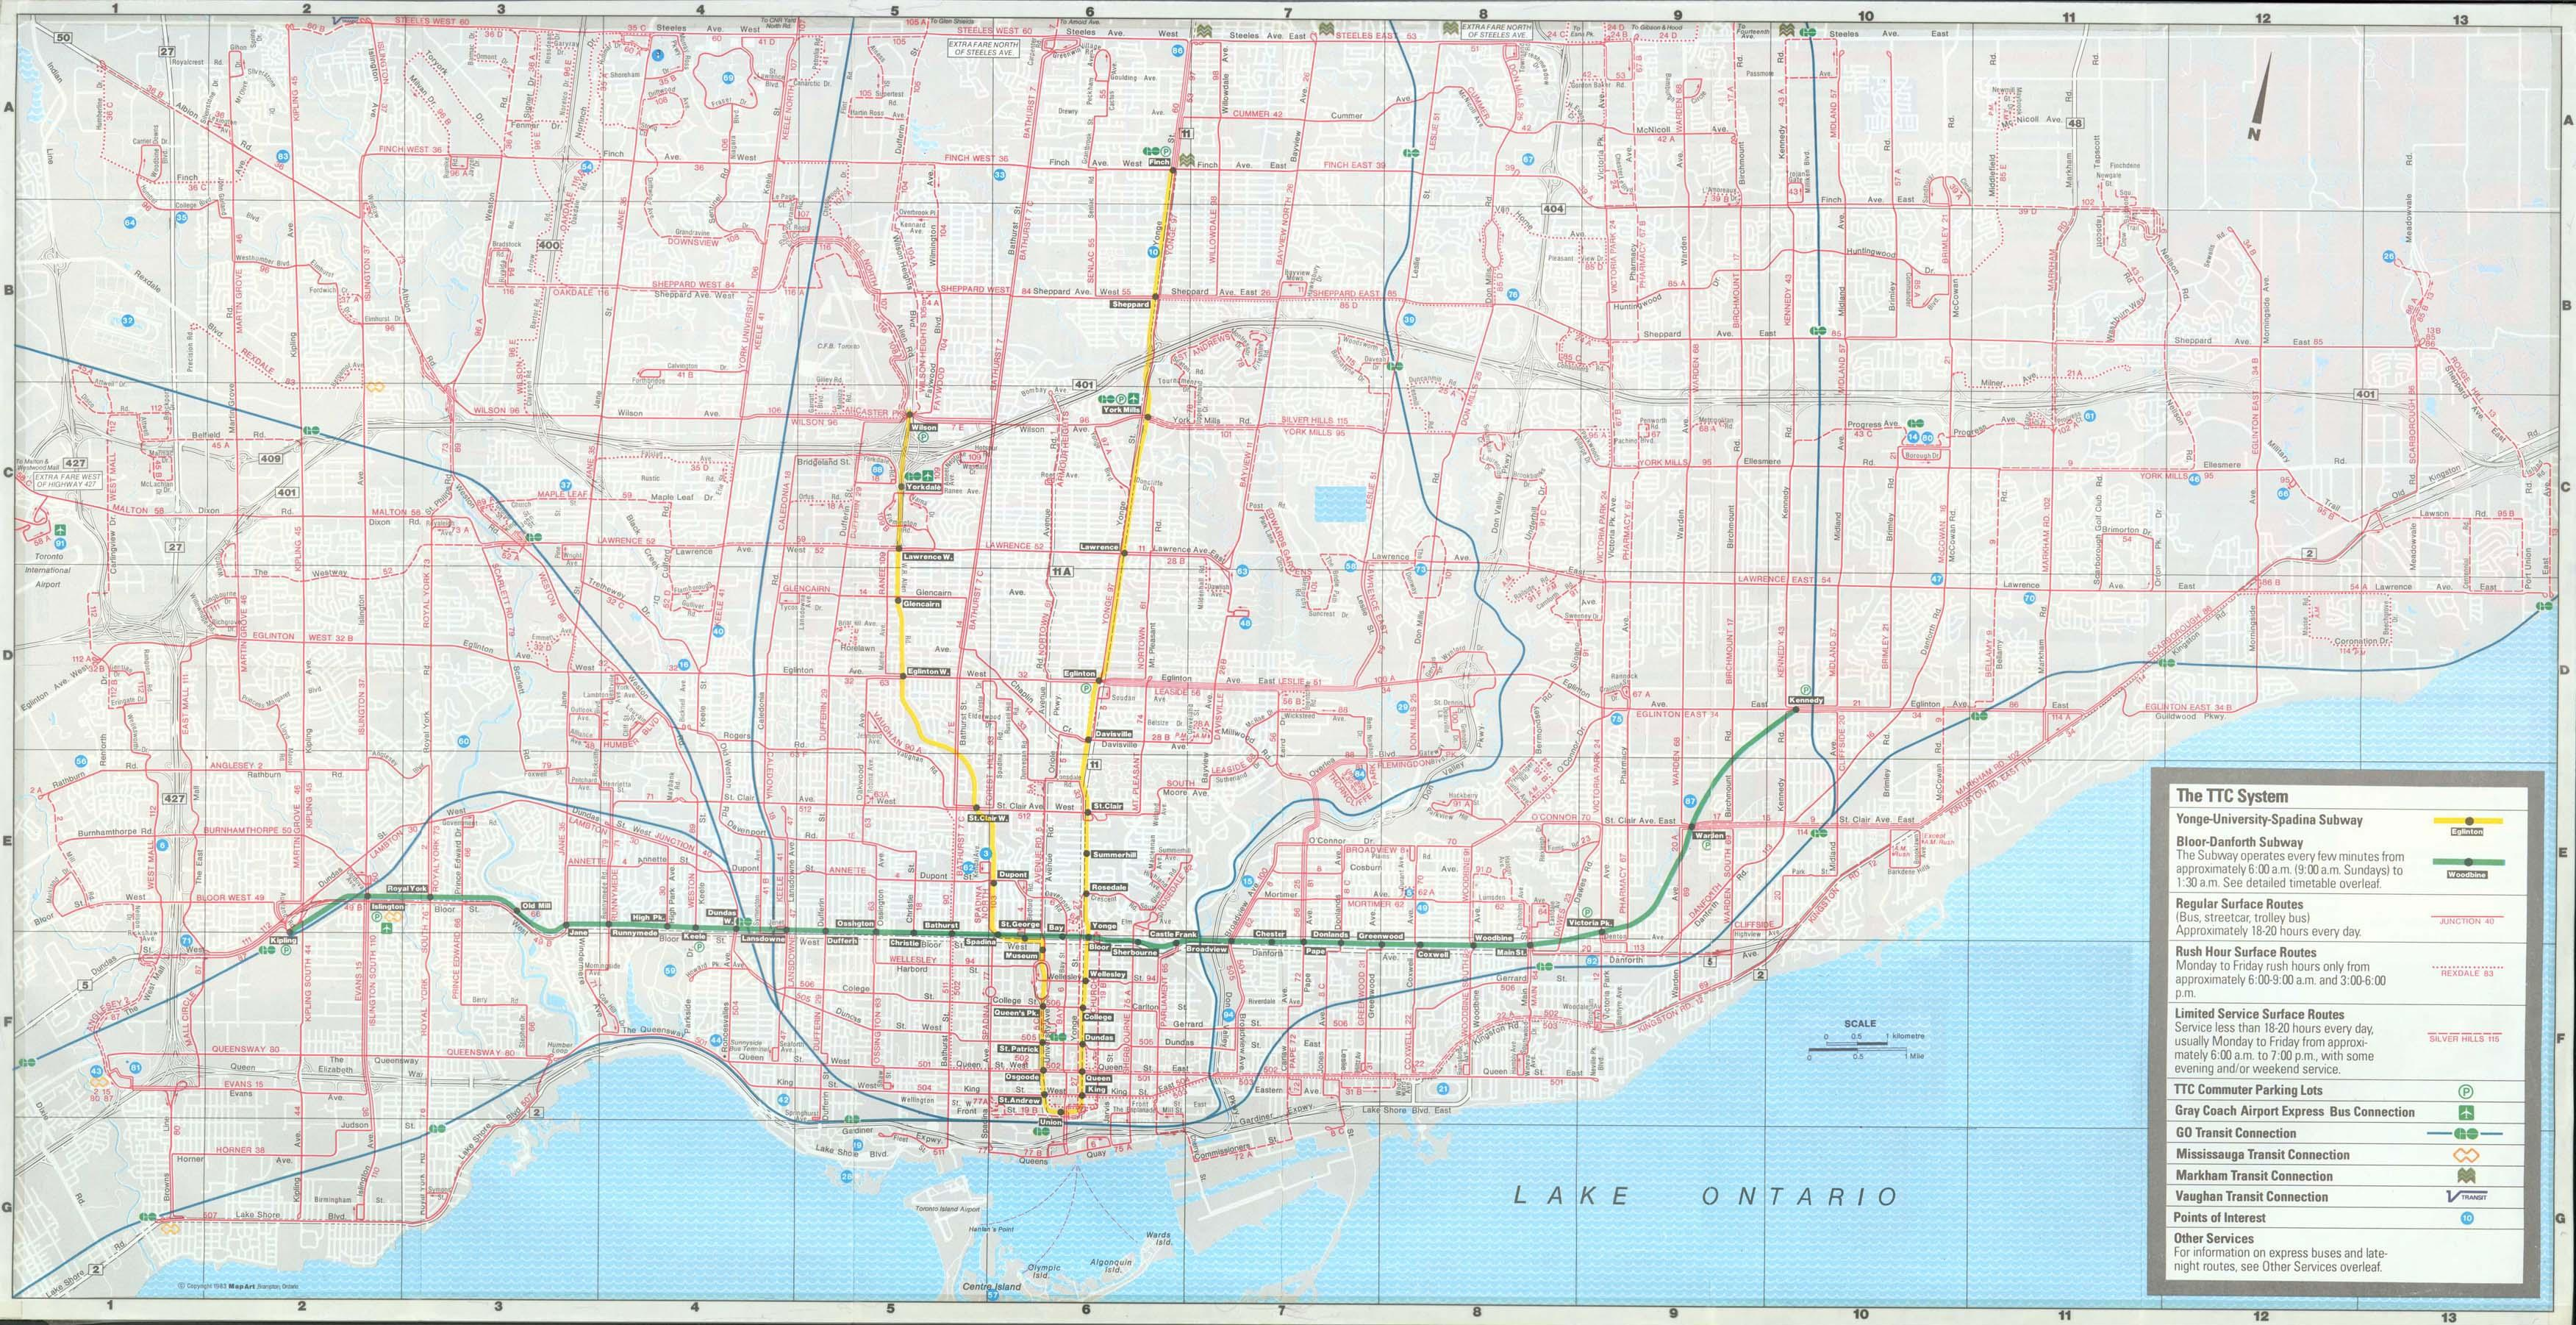 New York City Subway Map February 2004.Ttc System Maps Transit Toronto Content